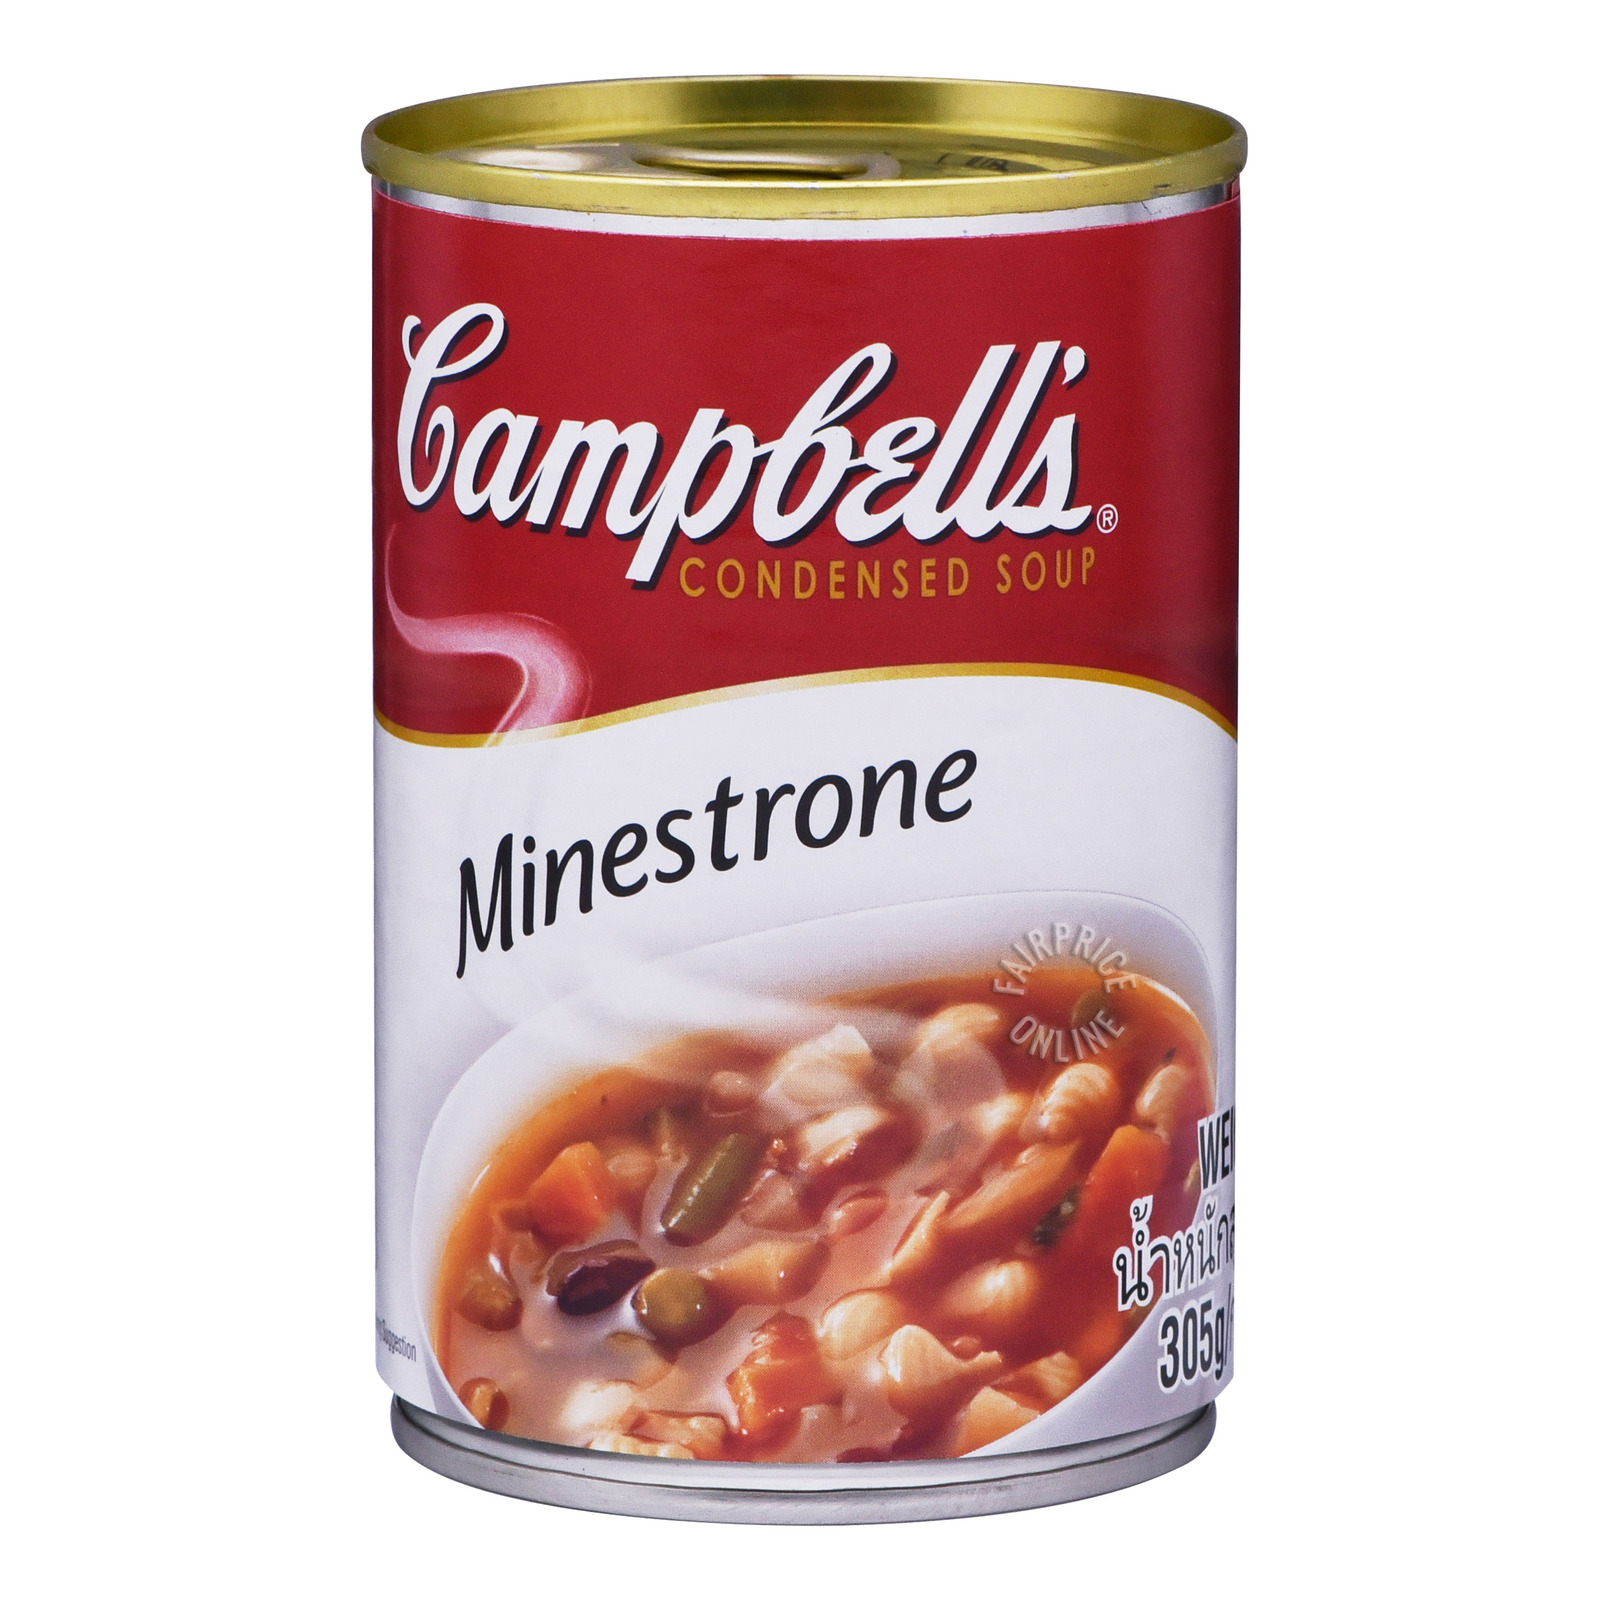 Campbell's Condensed Soup - Minestrone